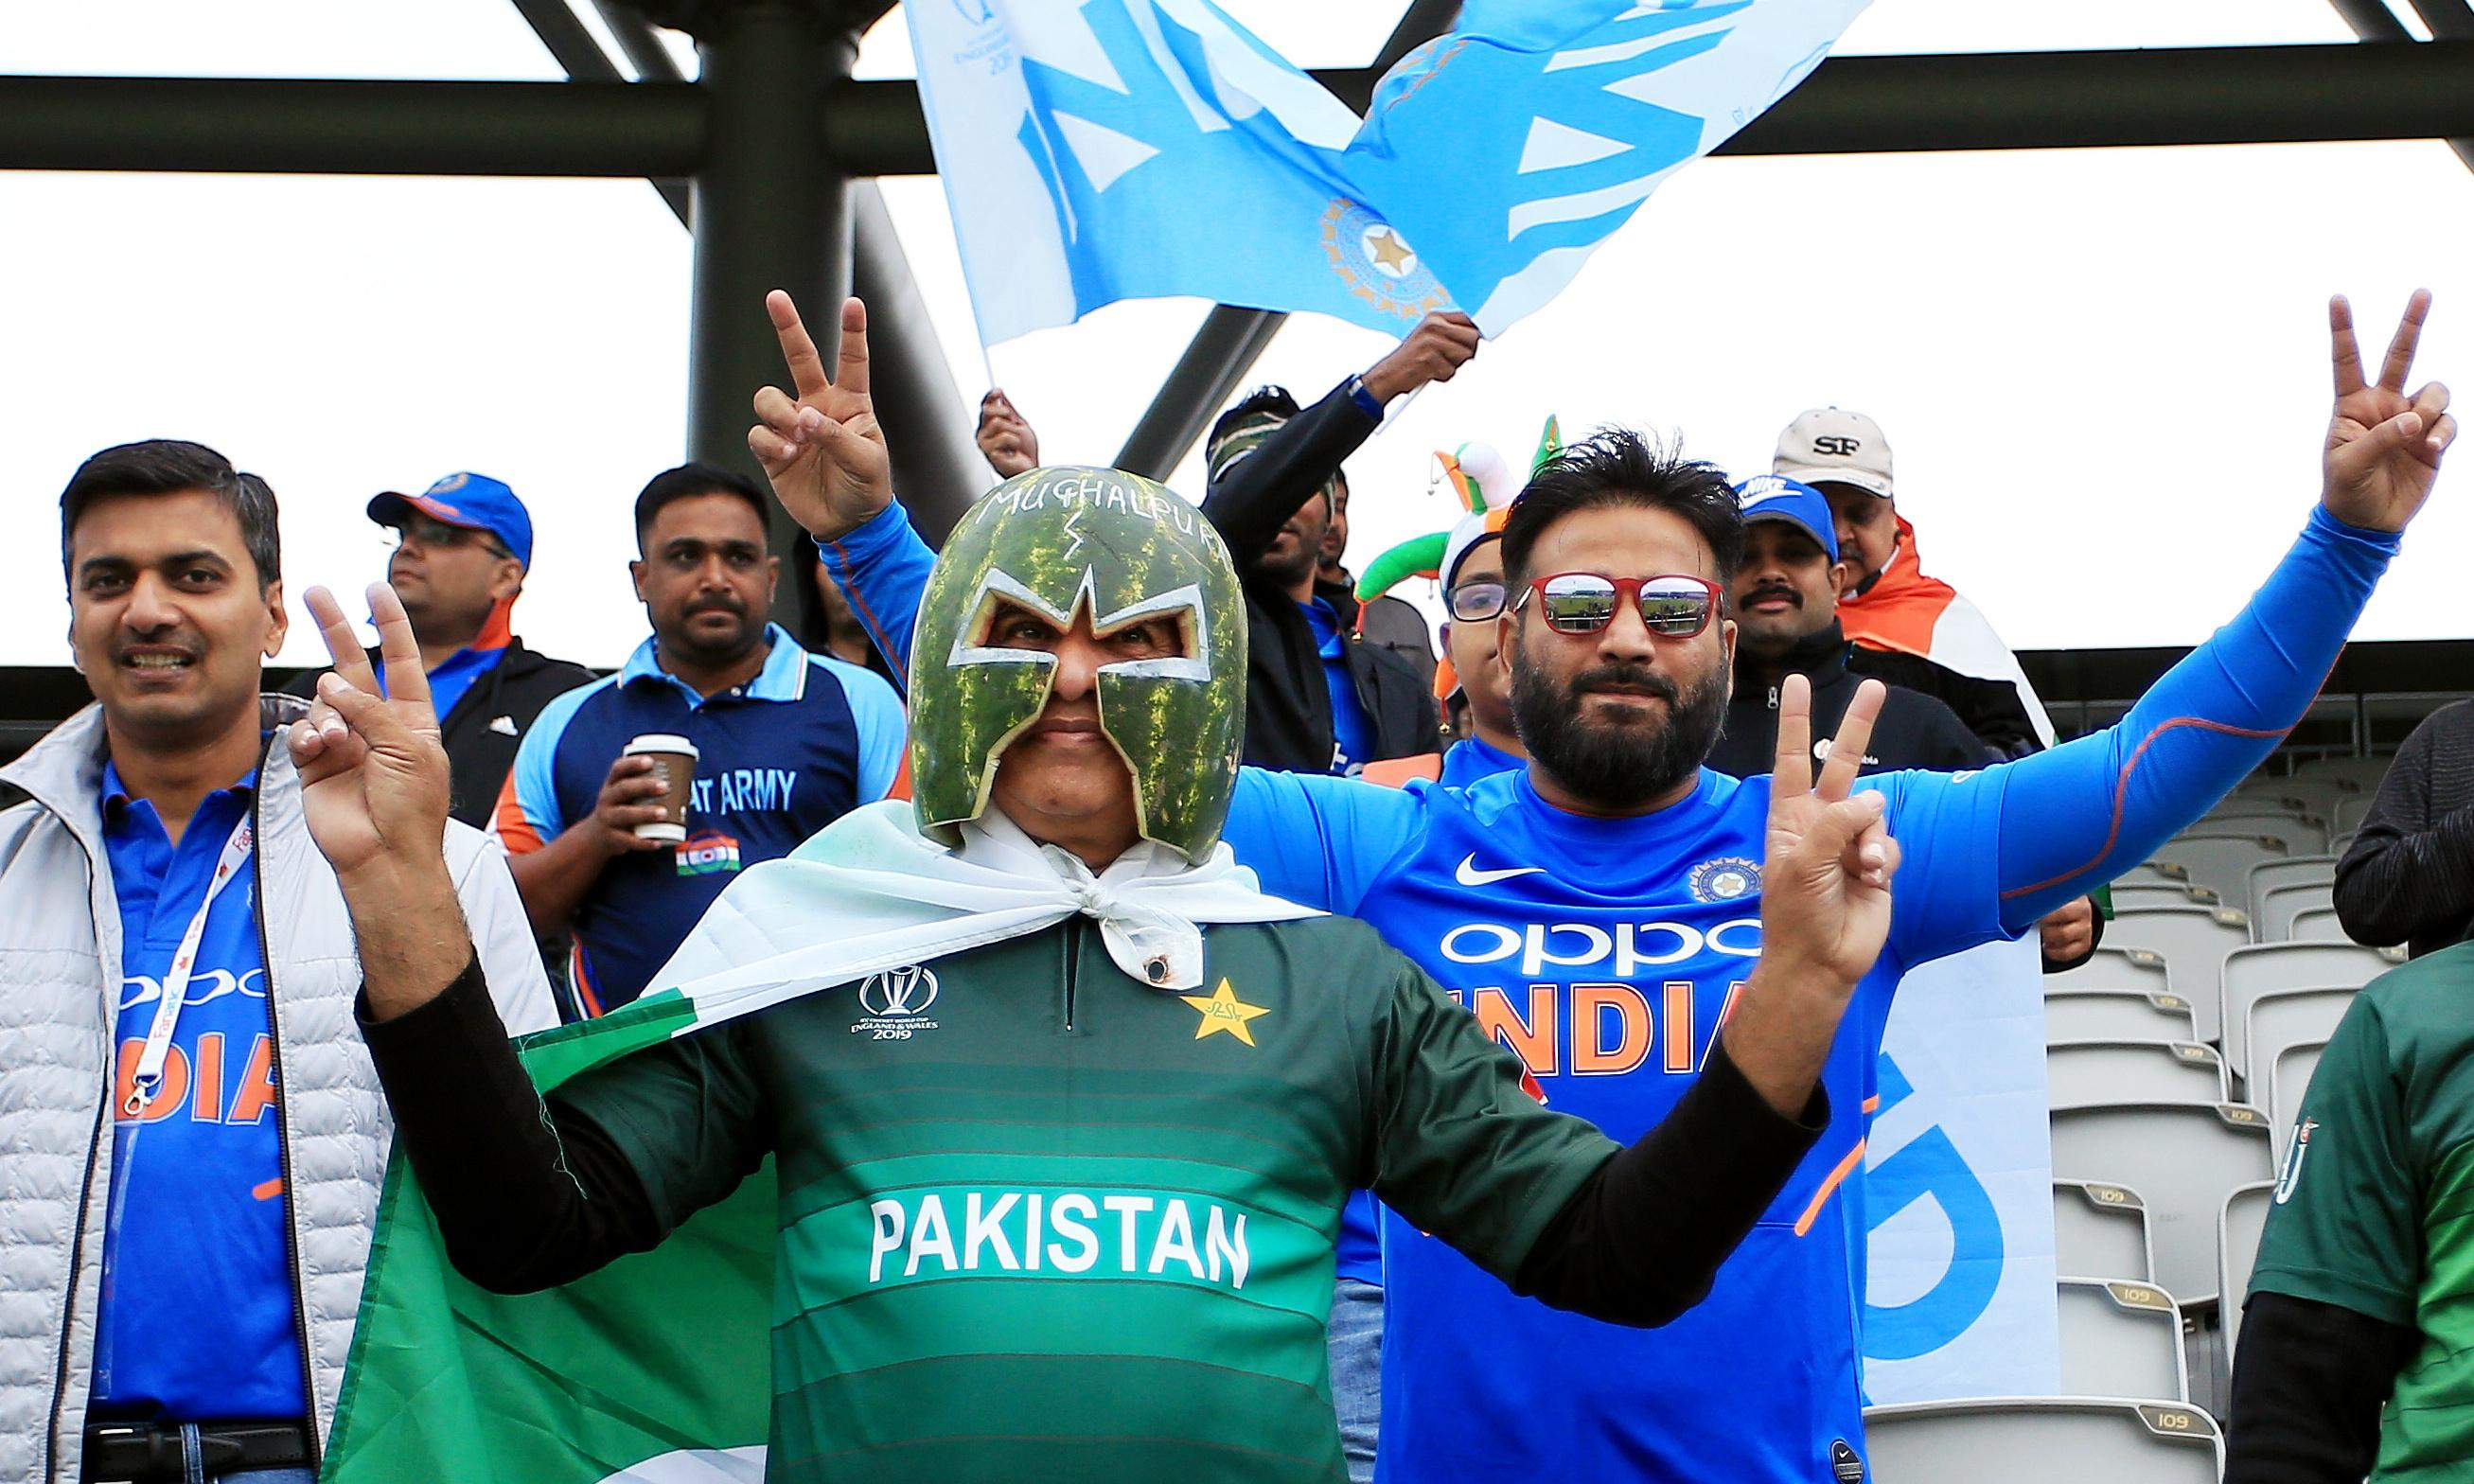 India and Pakistan fans give Old Trafford a taste of true cricket atmosphere